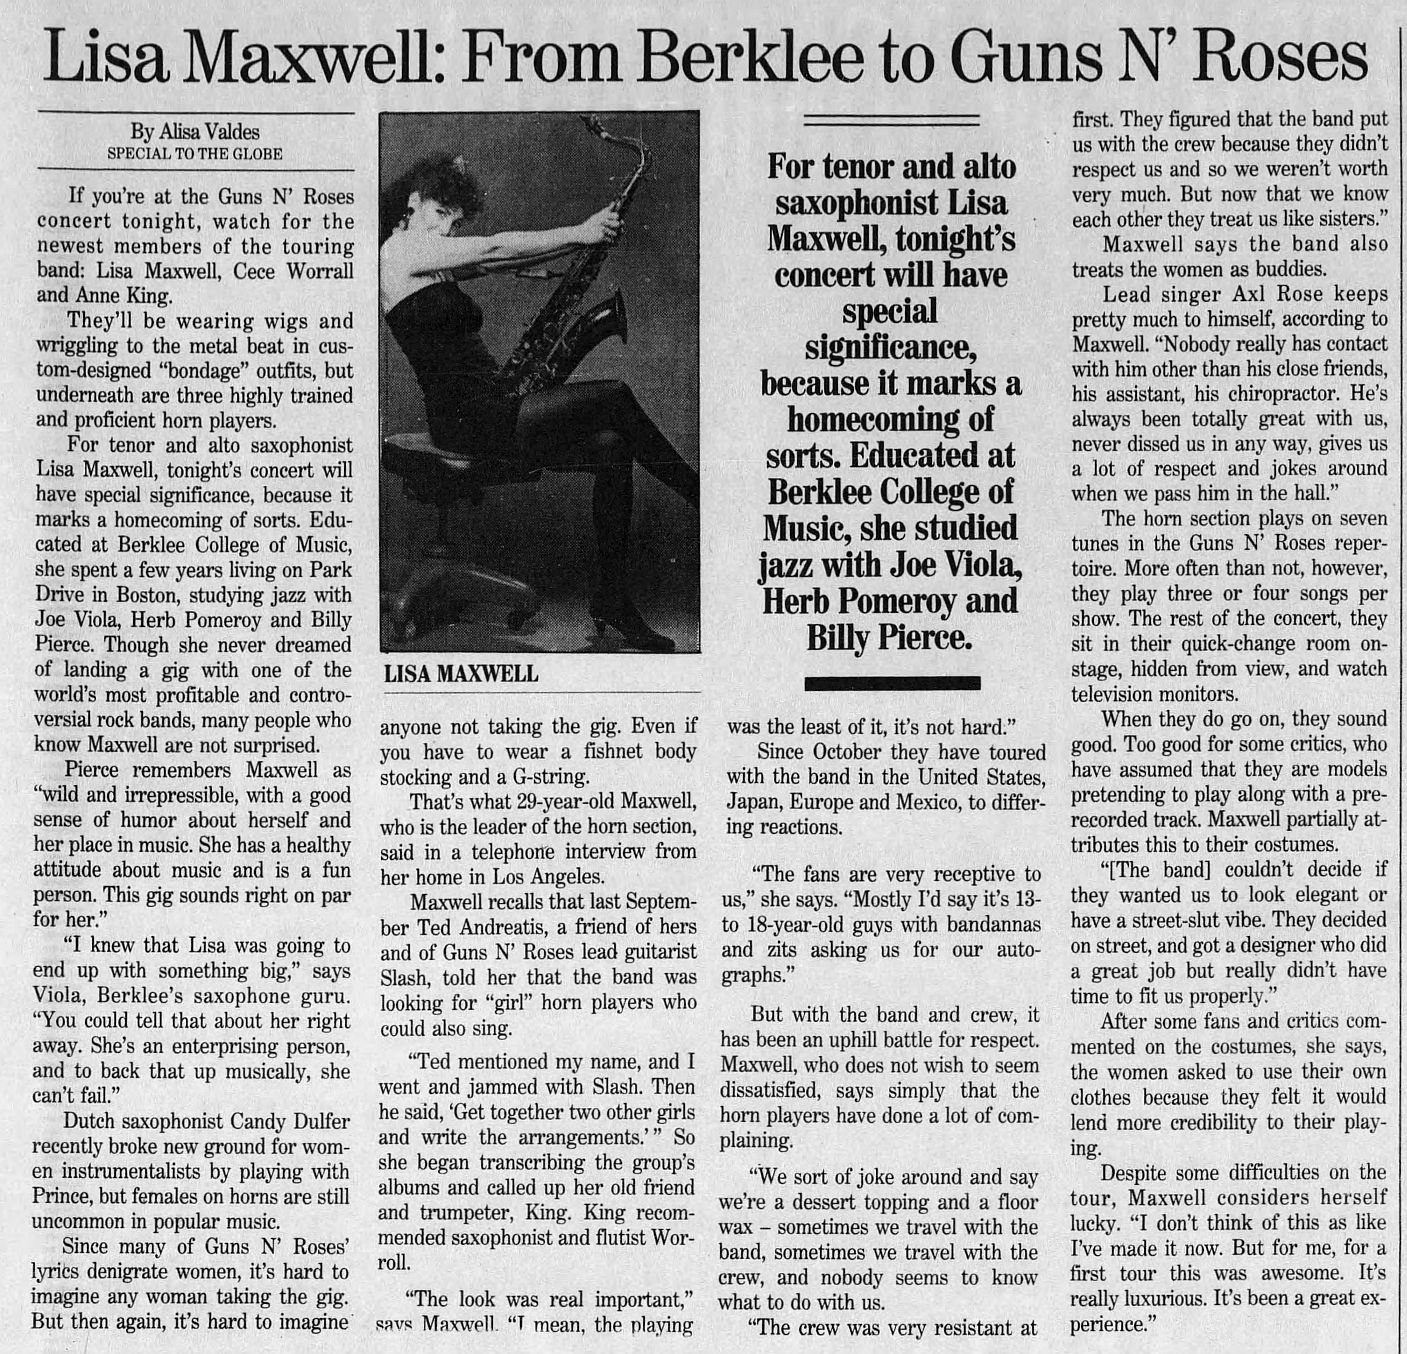 1992.07.31 - The Boston Globe - Lisa Maxwell: From Berklee to Guns Ν' Roses OhkTJ2hL_o